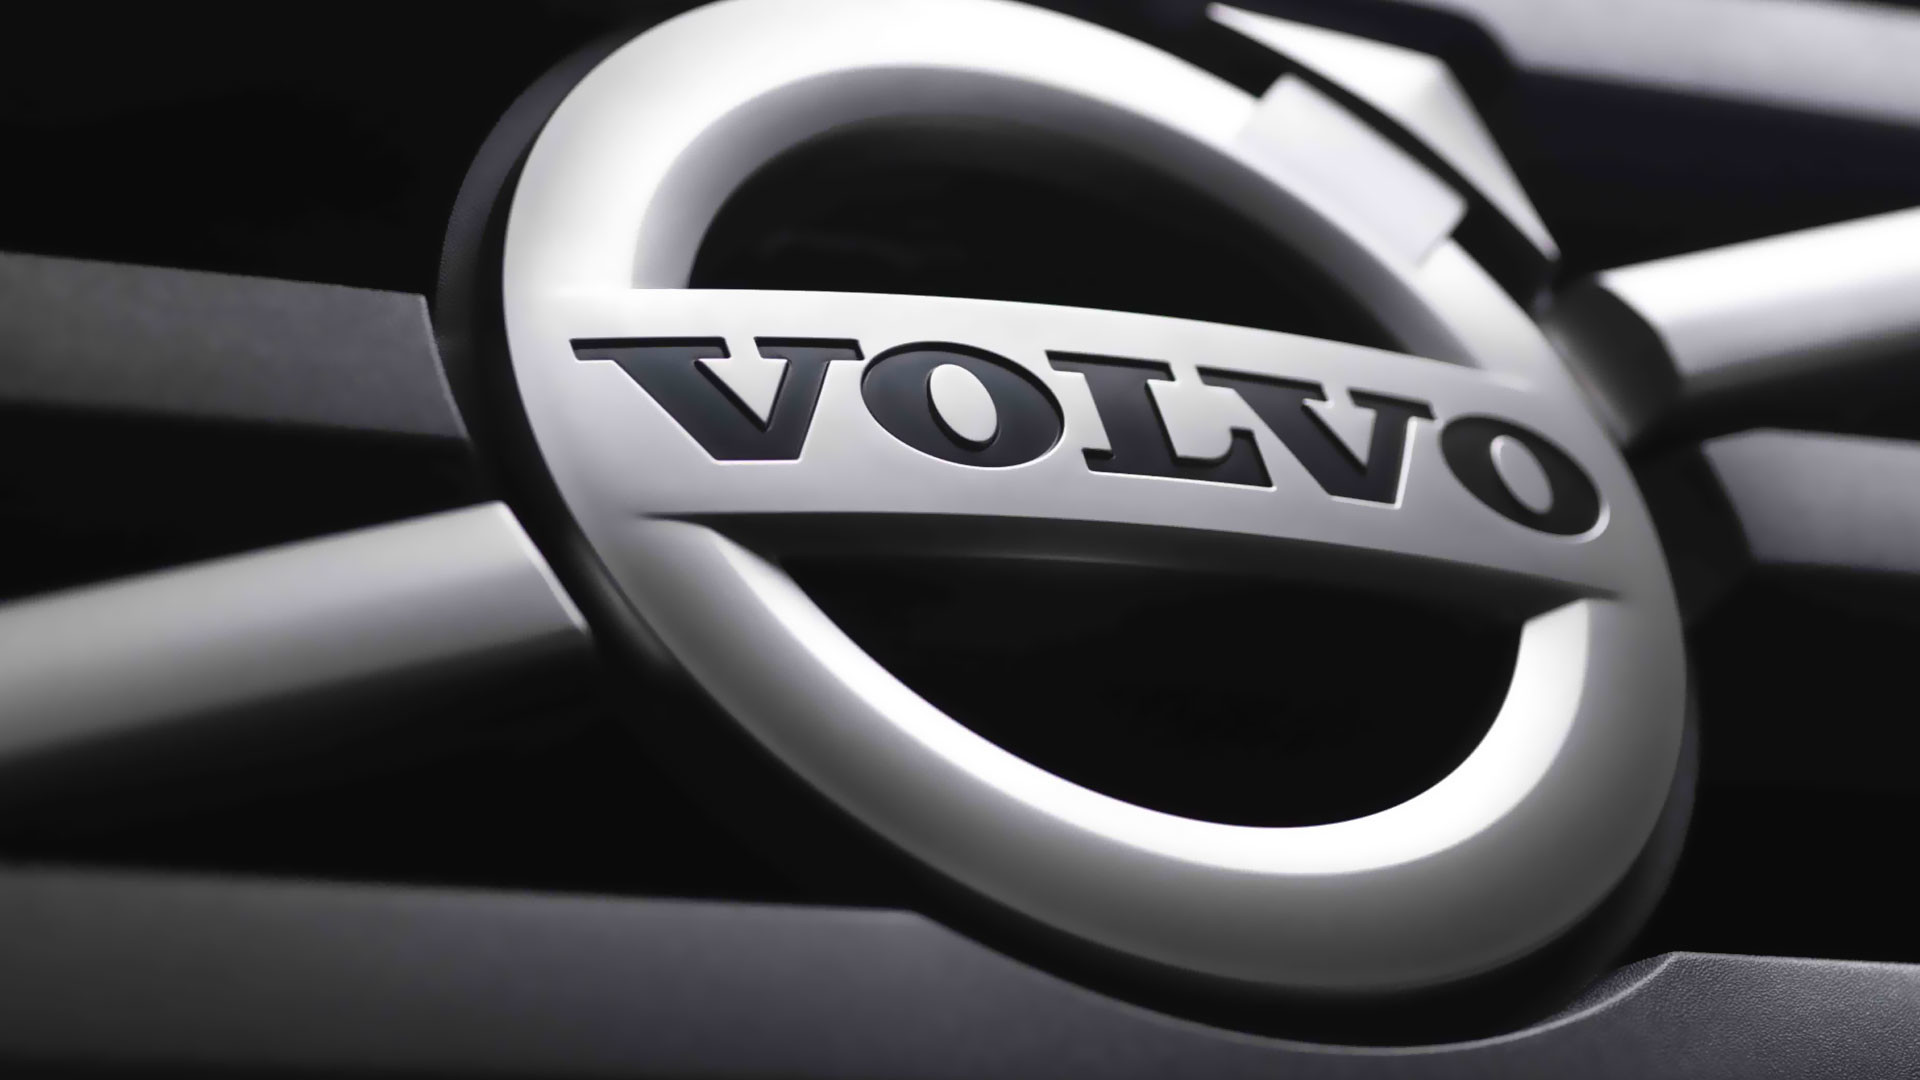 1920x1080 Volvo Logo Wallpaper For Windows #YCU